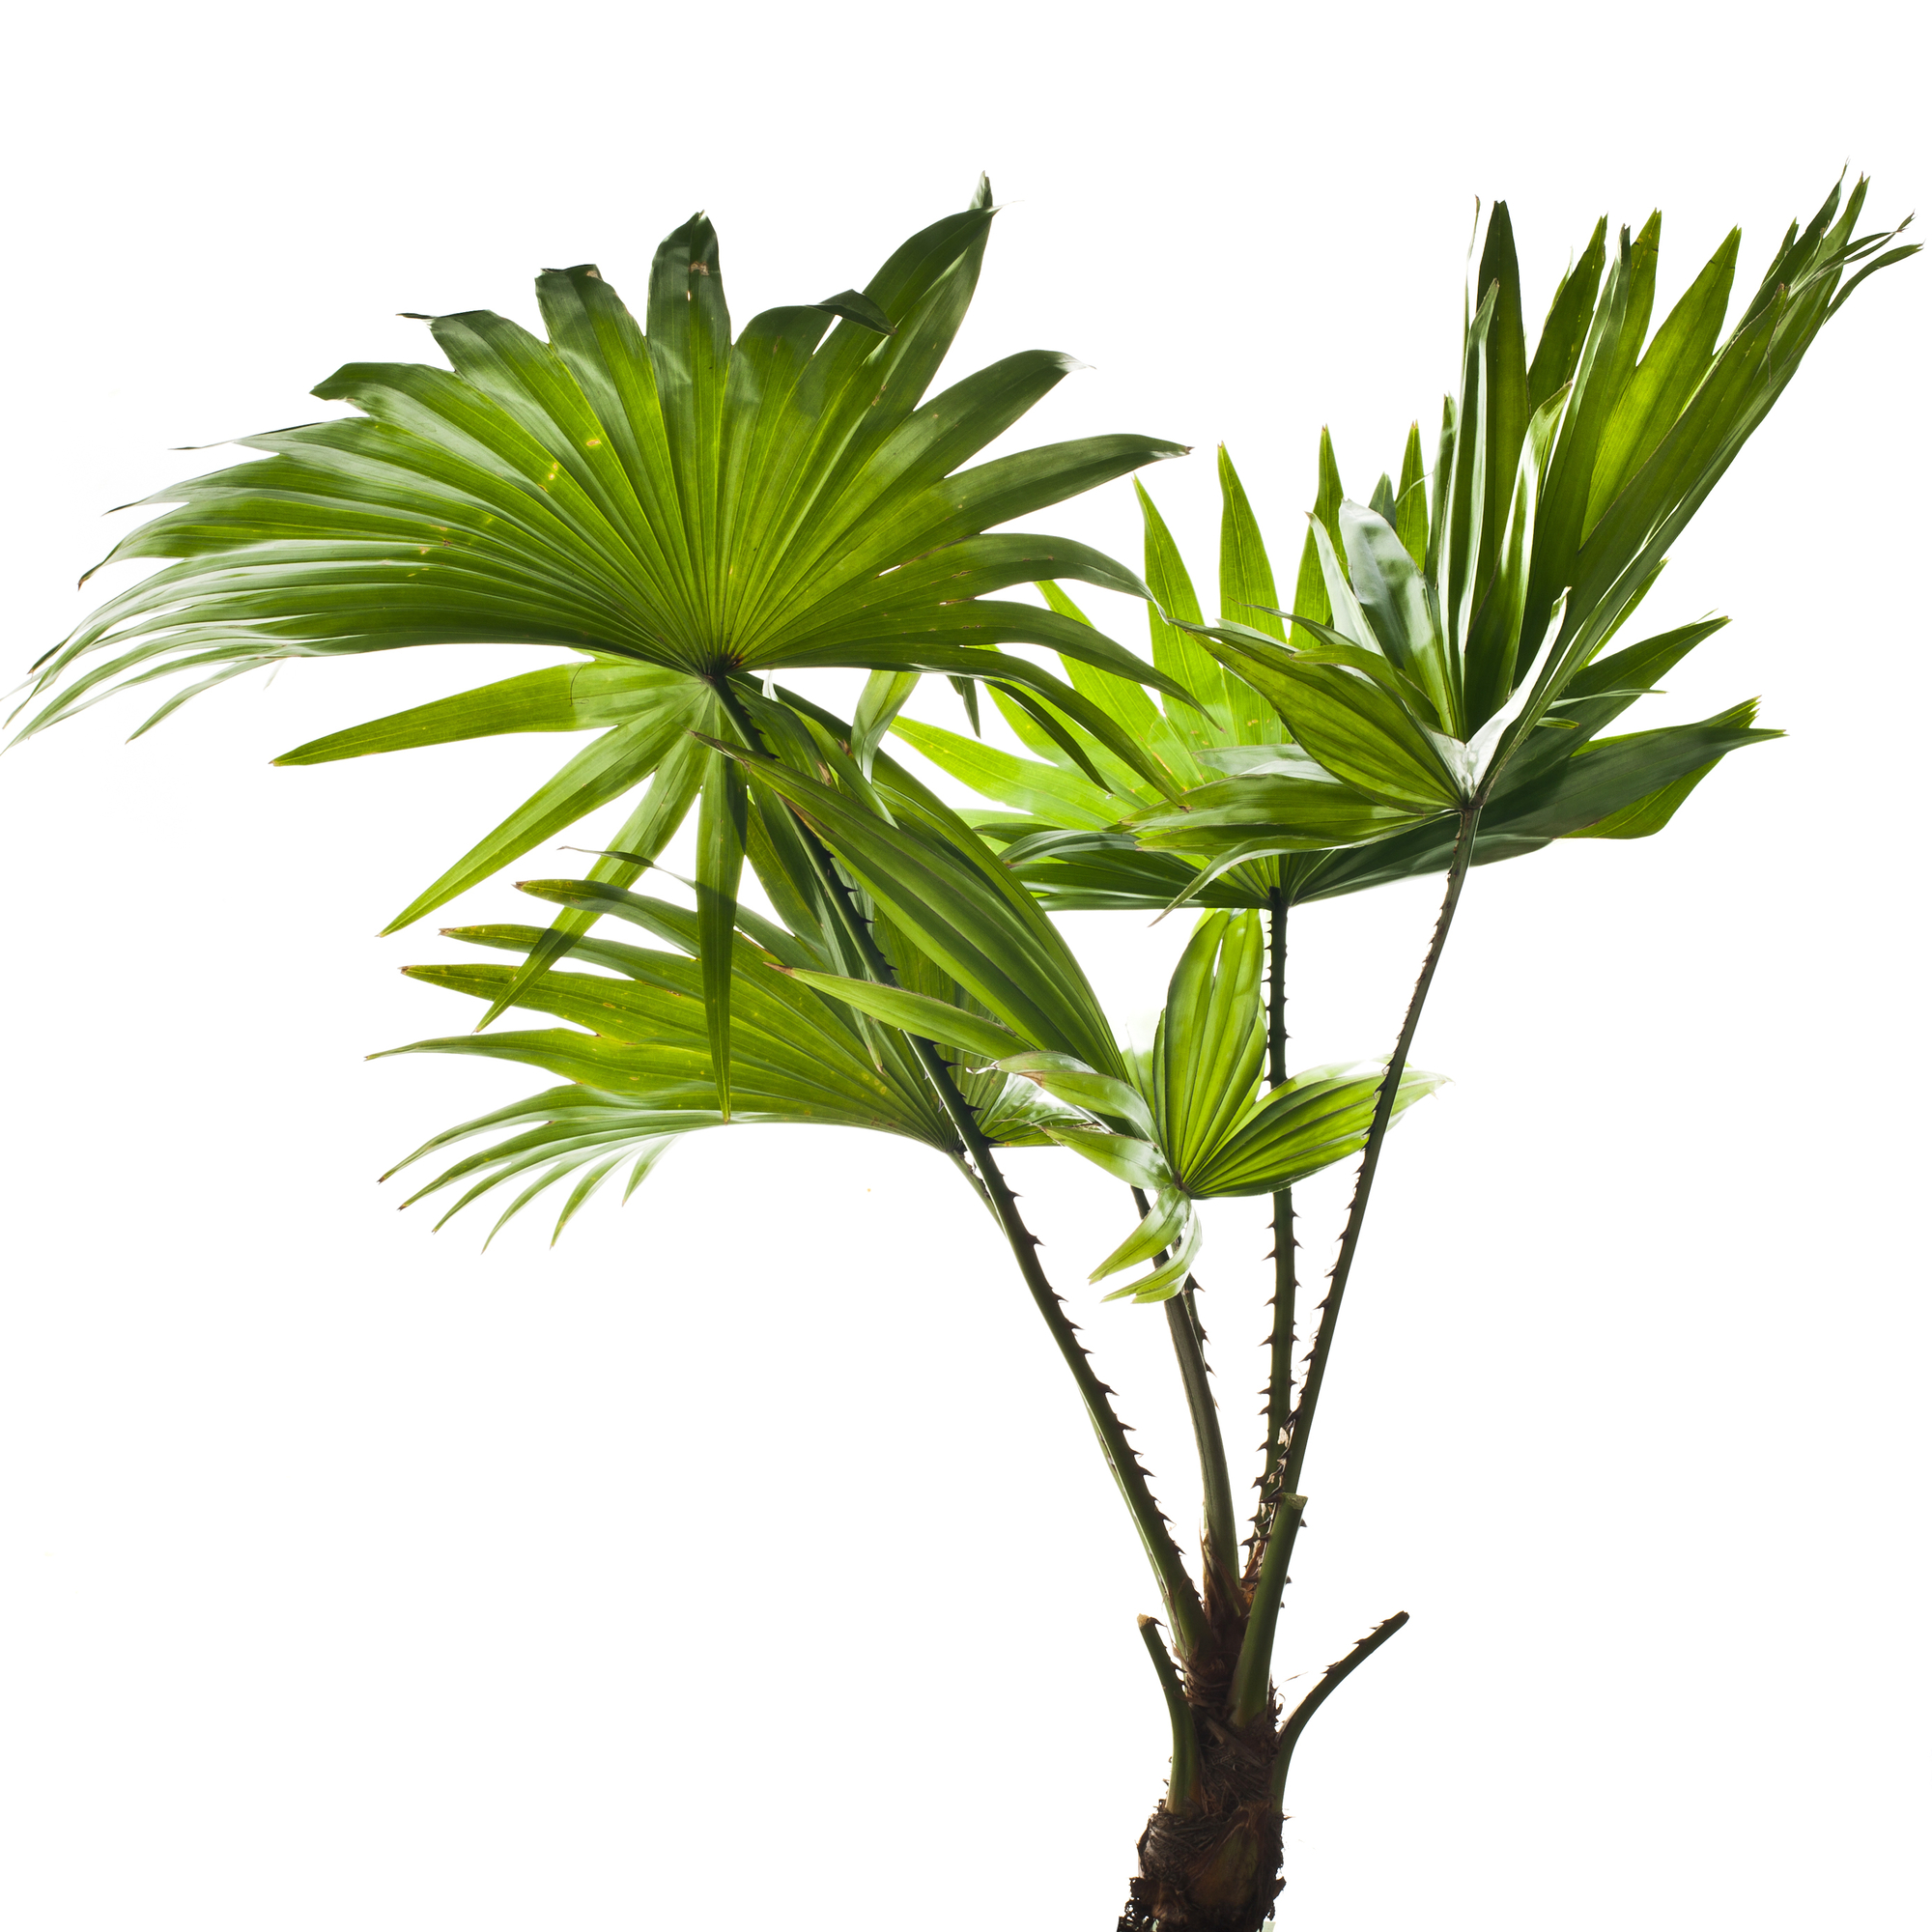 Plants To Choose From Its Important To Consider Your Recipients Living Space And Gardening Experience Before You Select A Plant Palm Trees Take Up A